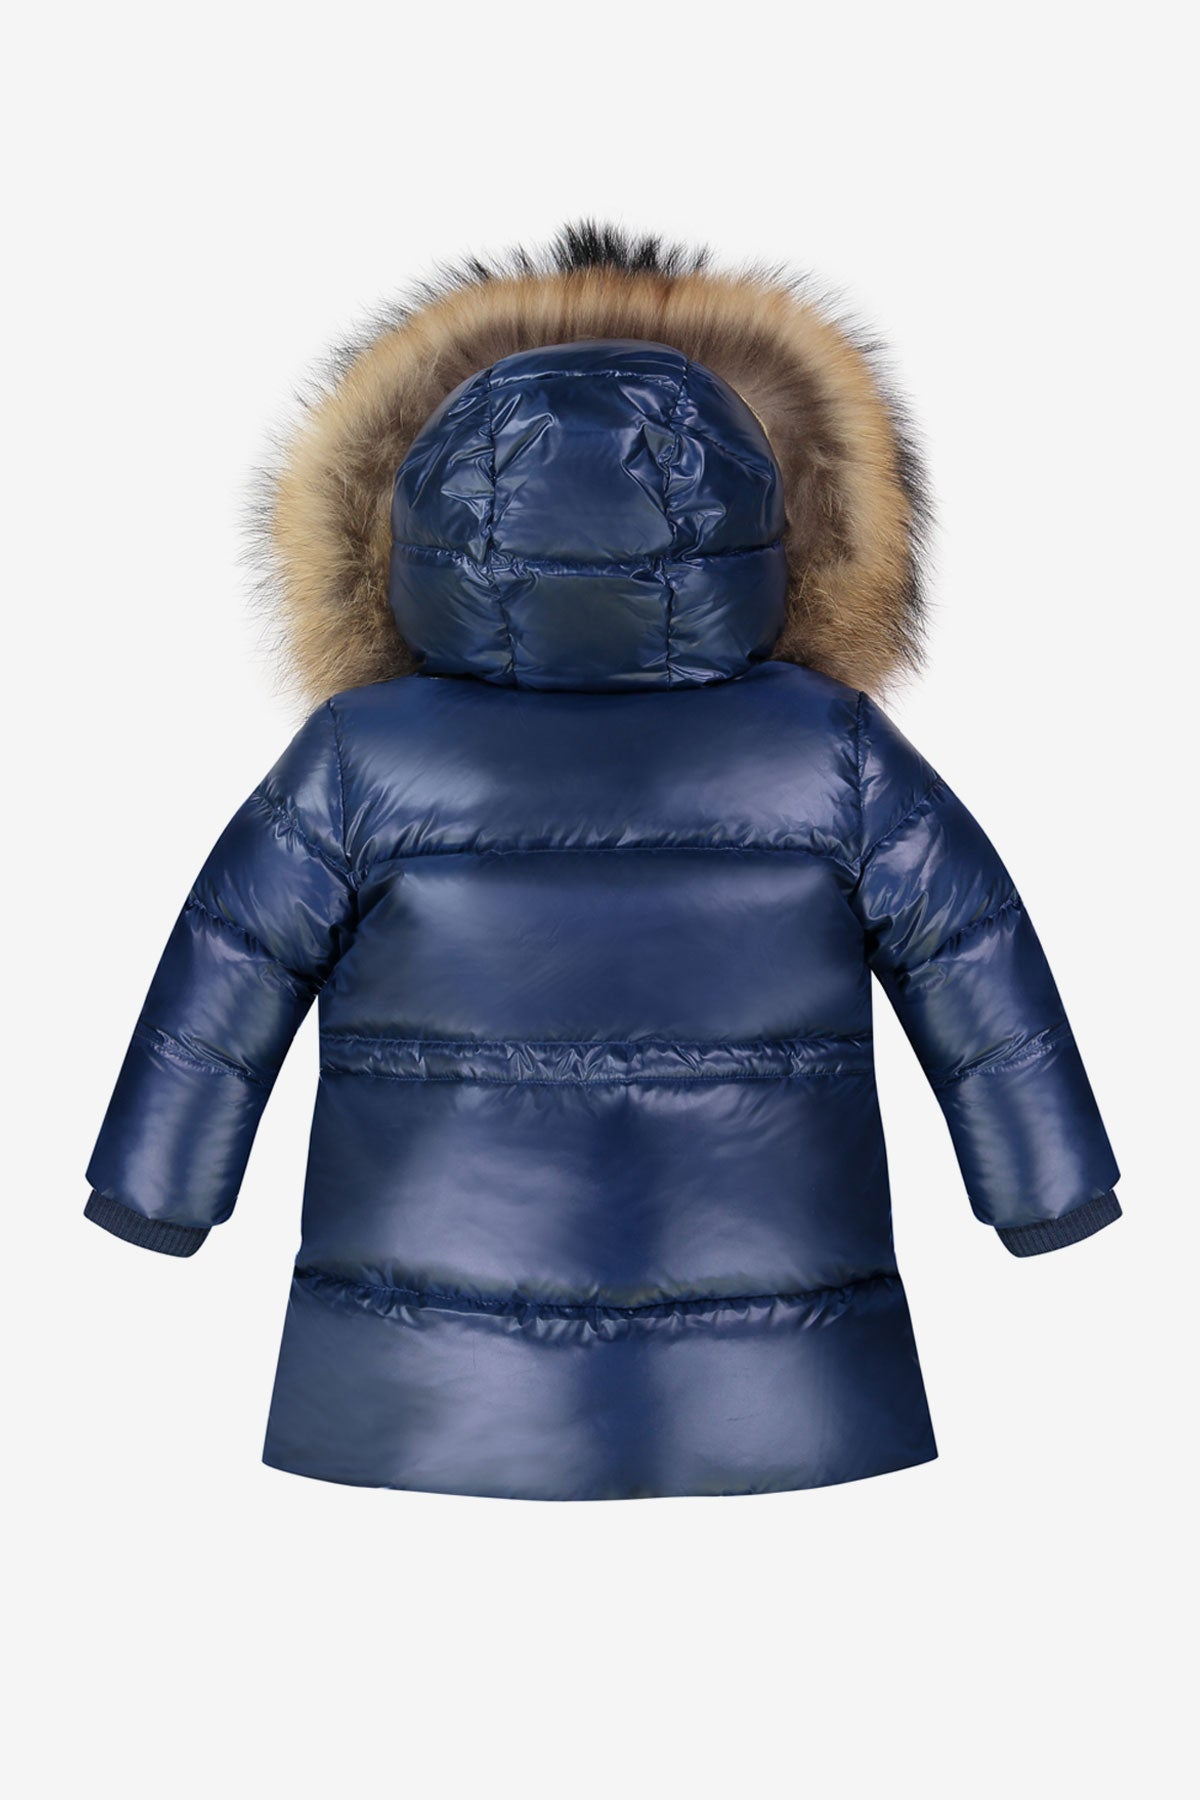 70b04242c ADD Down Baby Parka - Cobalt (Size 18M left) - Mini Ruby